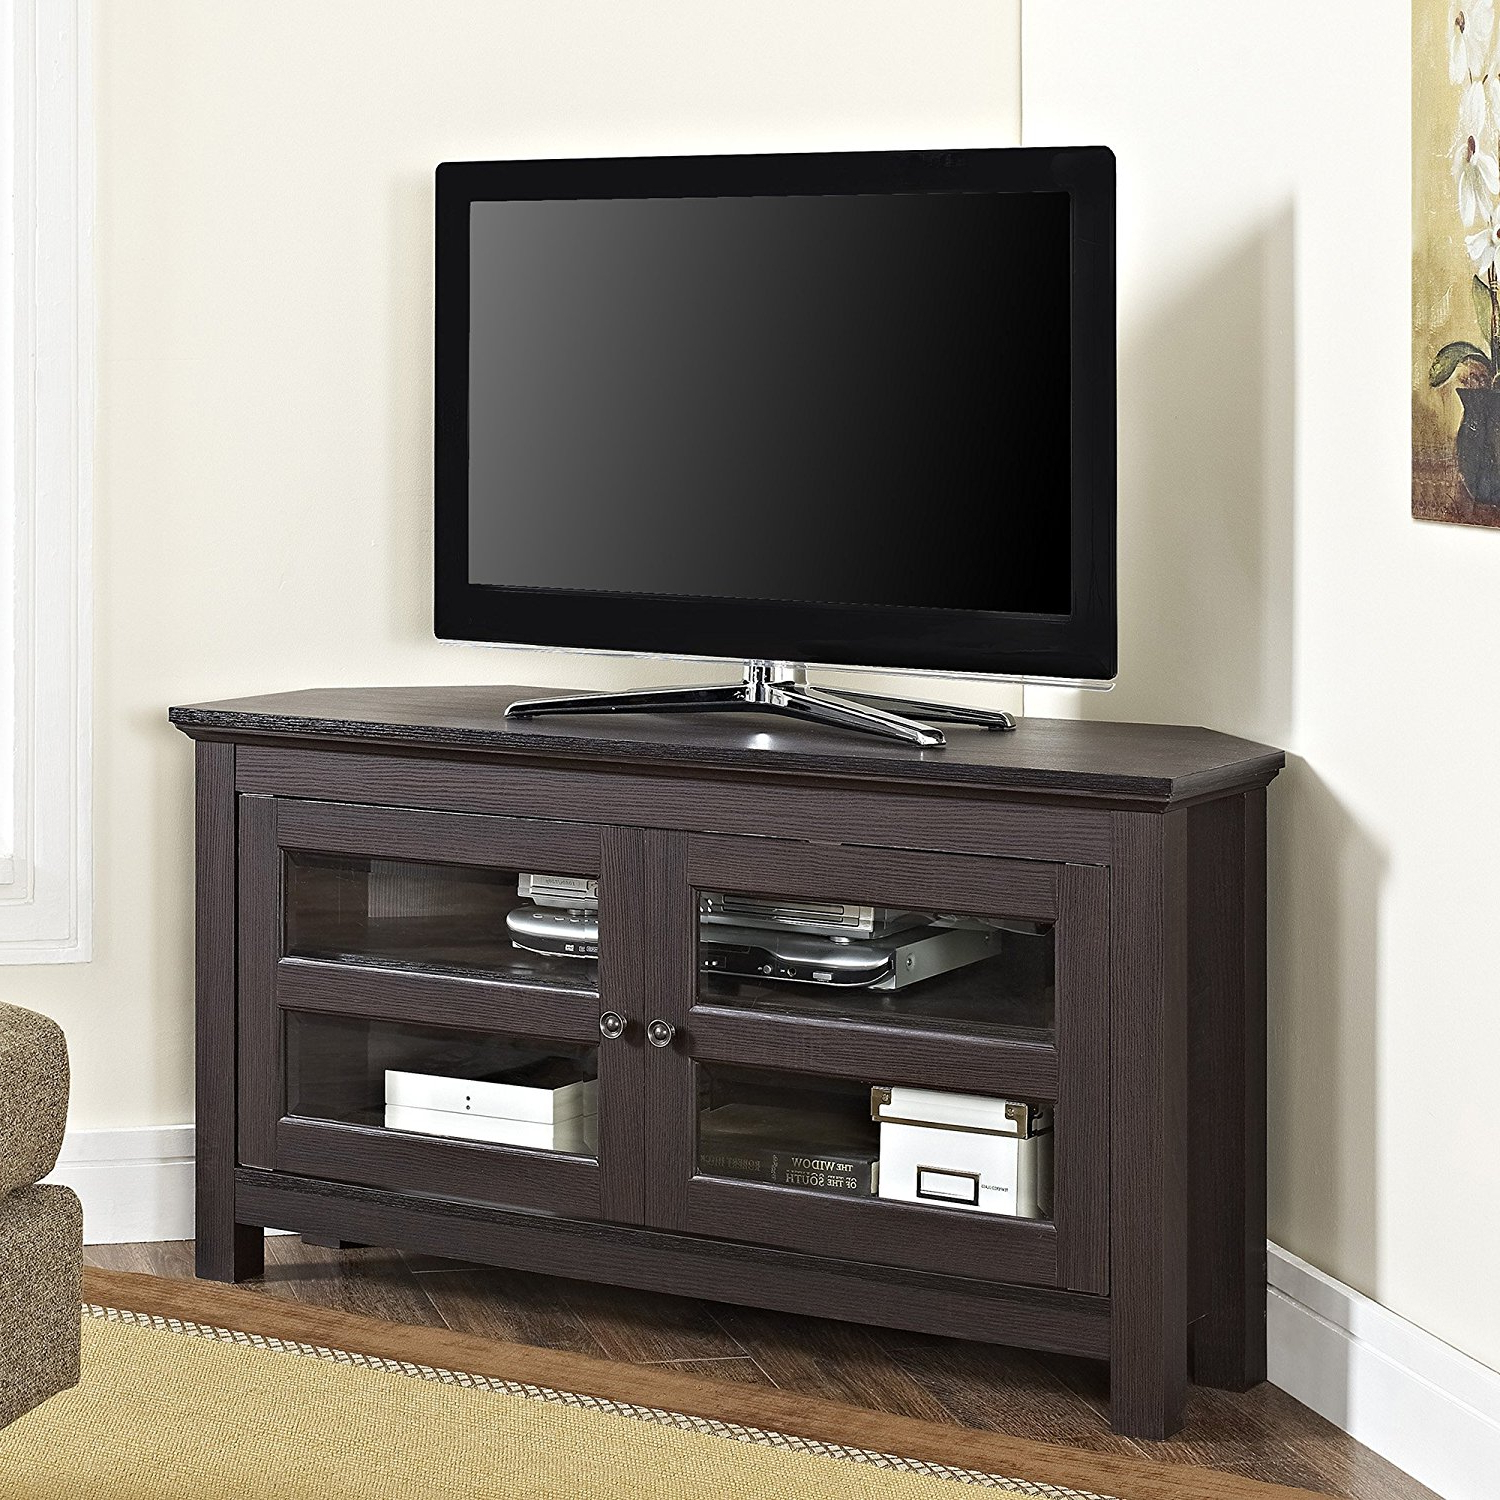 2017 Top 10 Best Modern Tall Corner Tv Stands In 2021 Reviews Throughout Priya Corner Tv Stands (View 4 of 25)